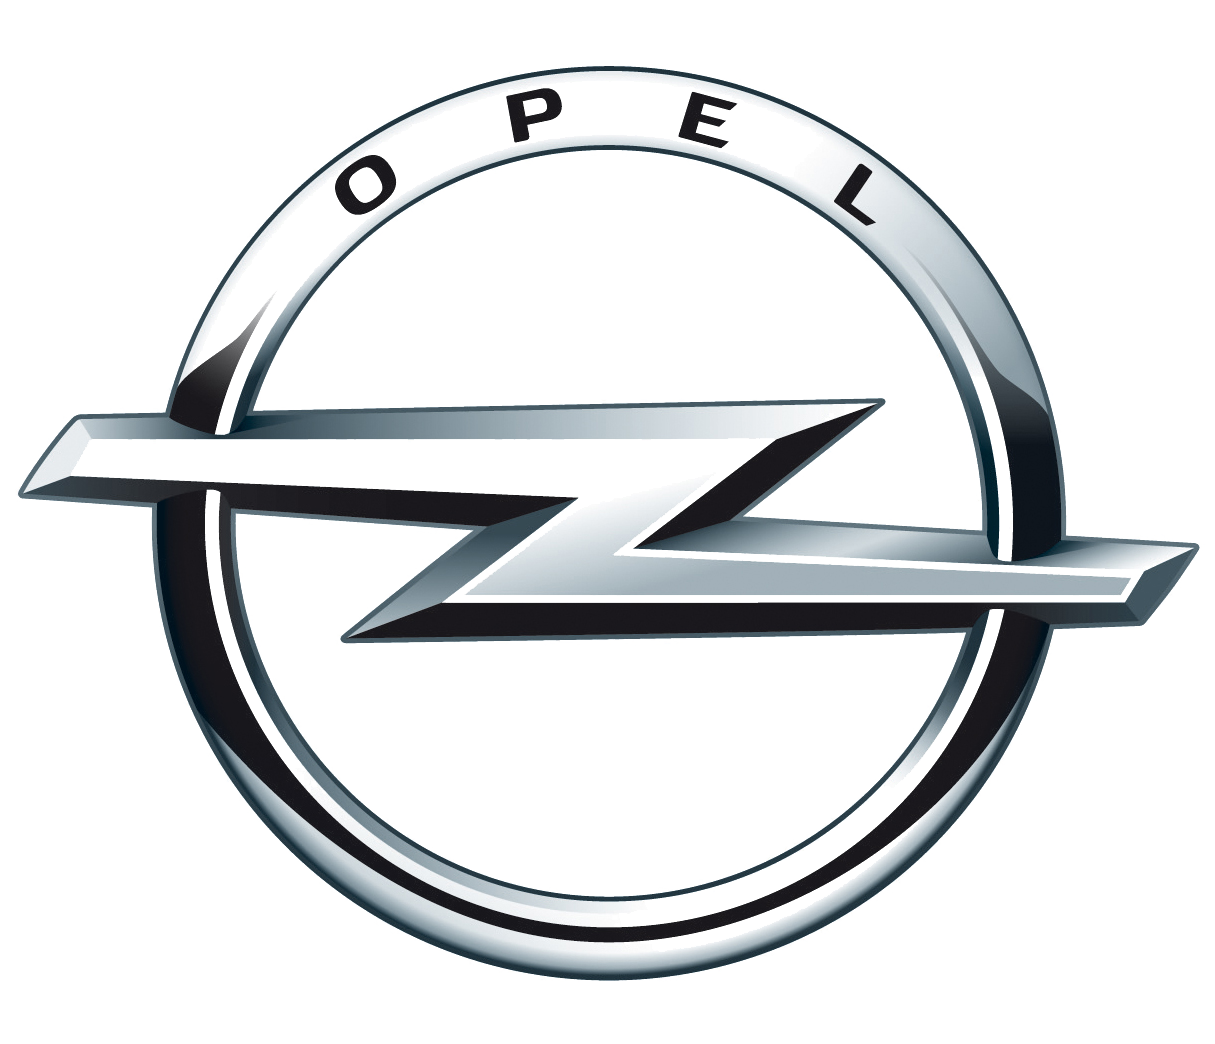 Opel car logo PNG brand image - Opel HD PNG